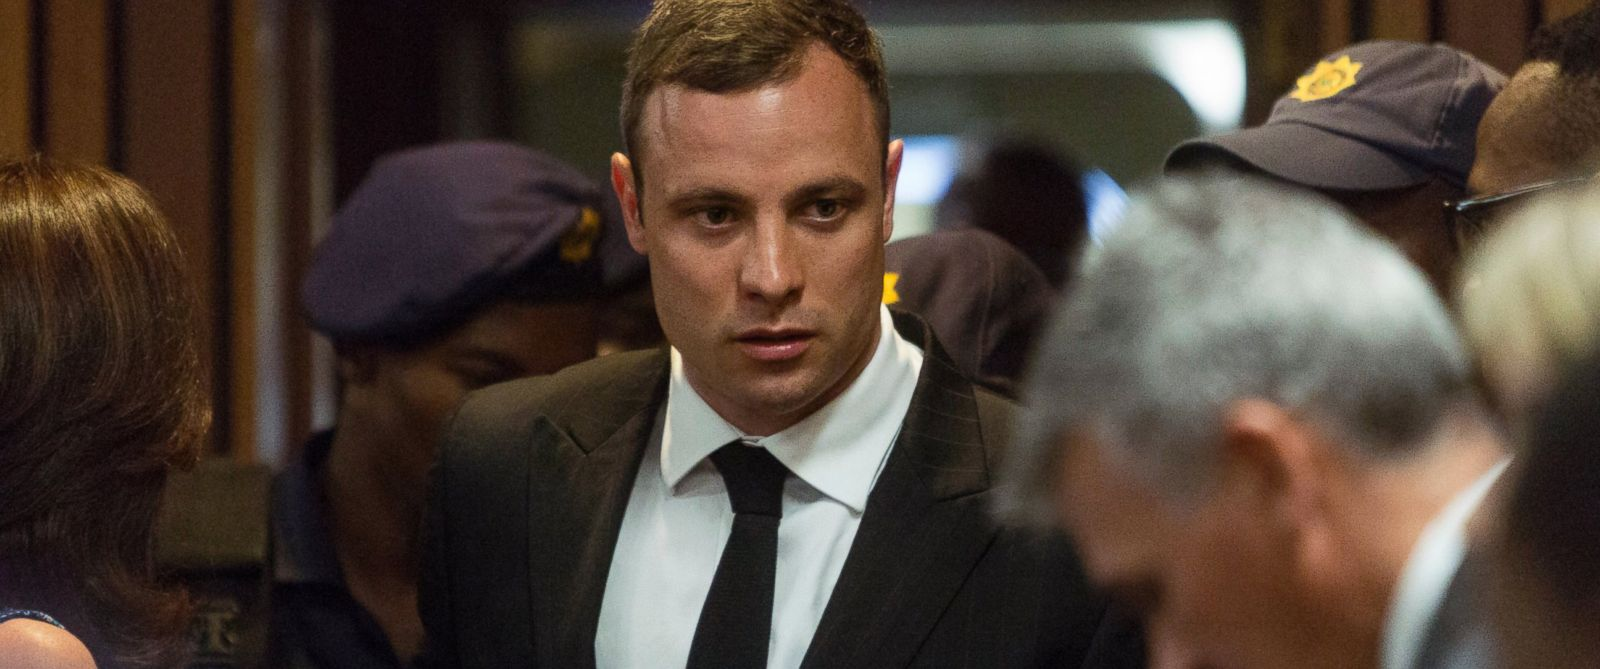 PHOTO: Oscar Pistorius arrives in court Monday, Oct. 13, 2014 to face sentencing for the shooting death of his girlfriend Reeva Steenkamp.